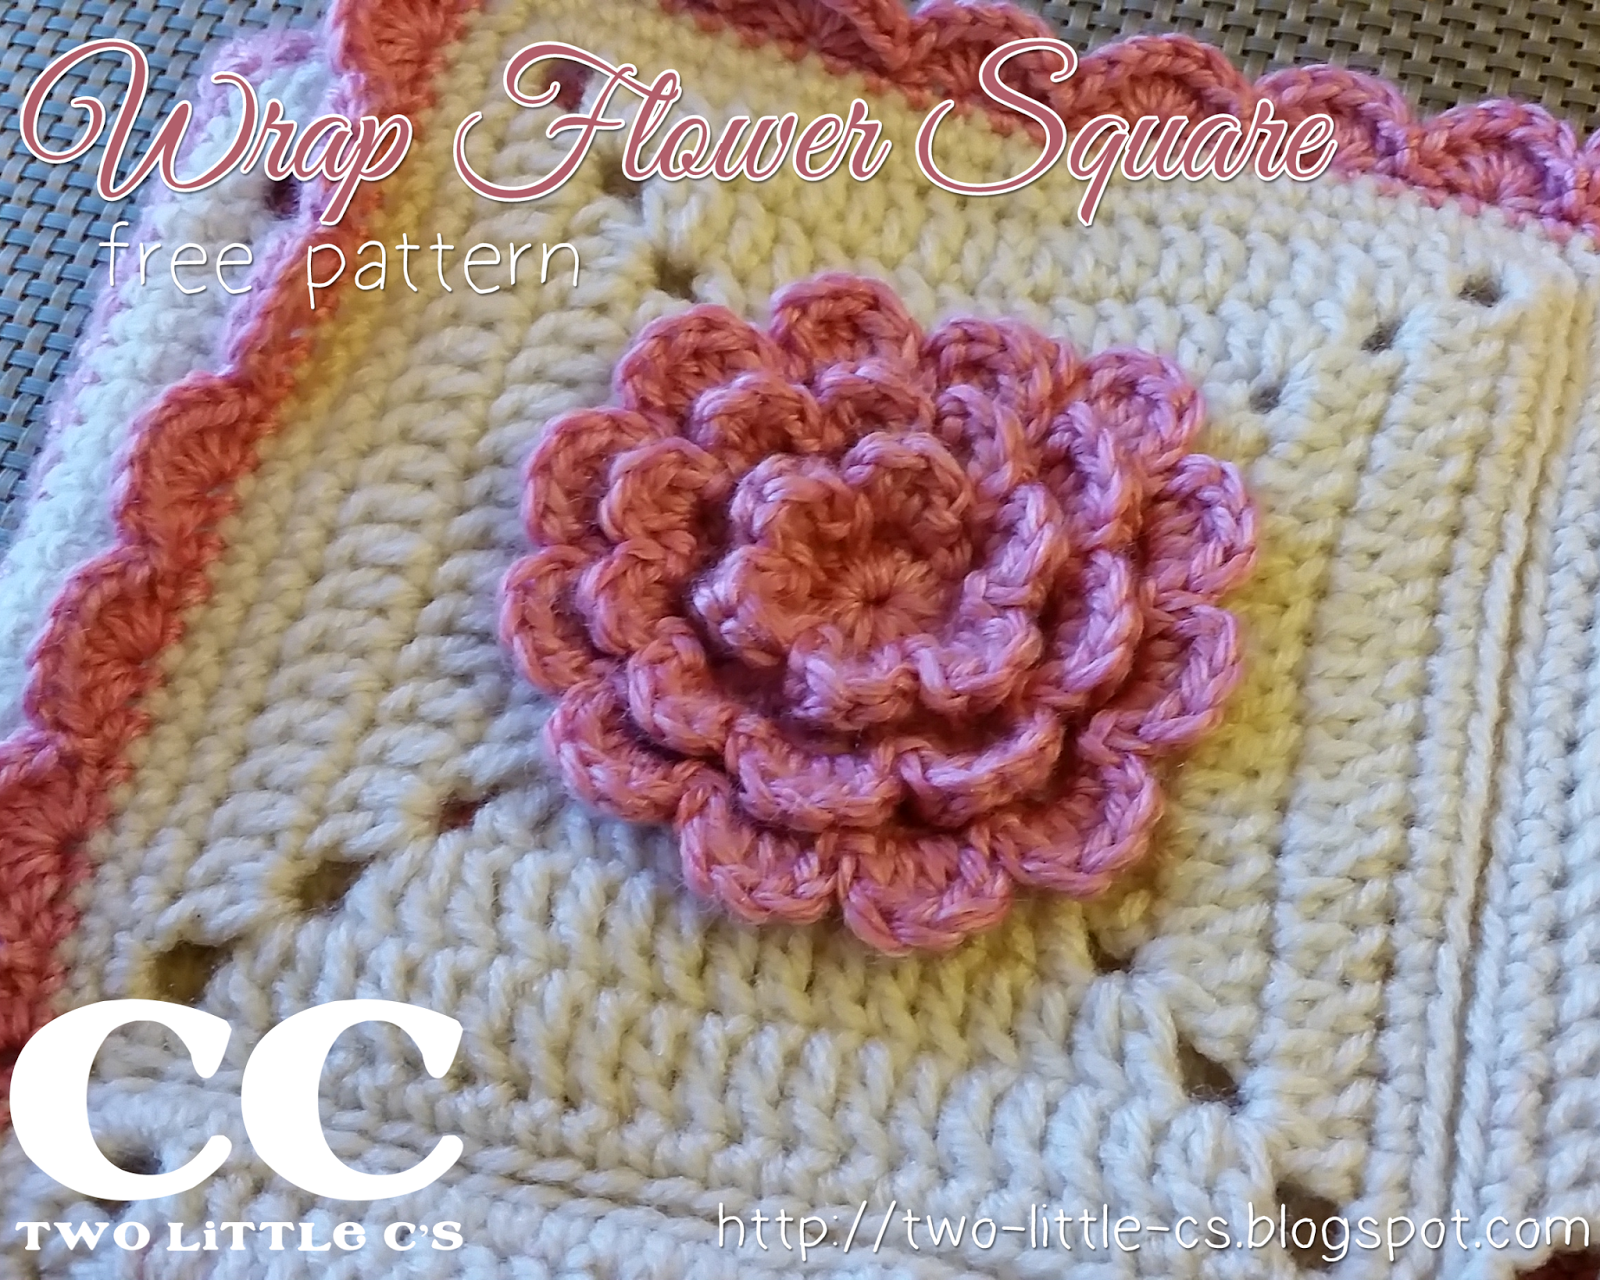 Wrap flower square free crochet pattern squares pinterest wrap flower square free crochet pattern bankloansurffo Image collections